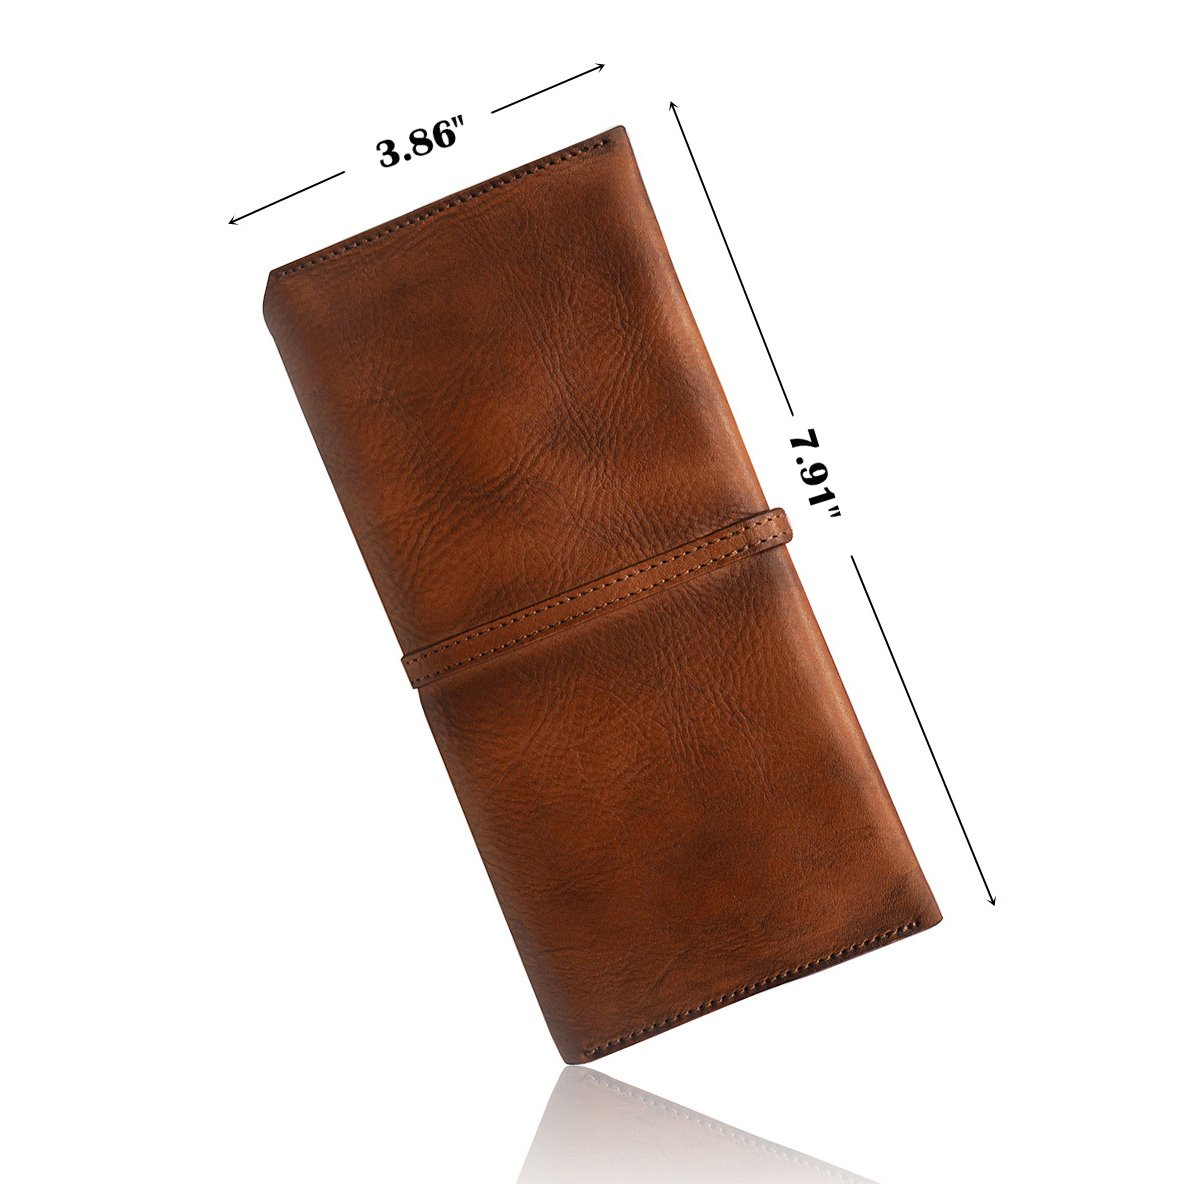 879Brown Wallets for Women Genuine Leather Card Organizer Dip Dye Coin Purse Ladies Wallets